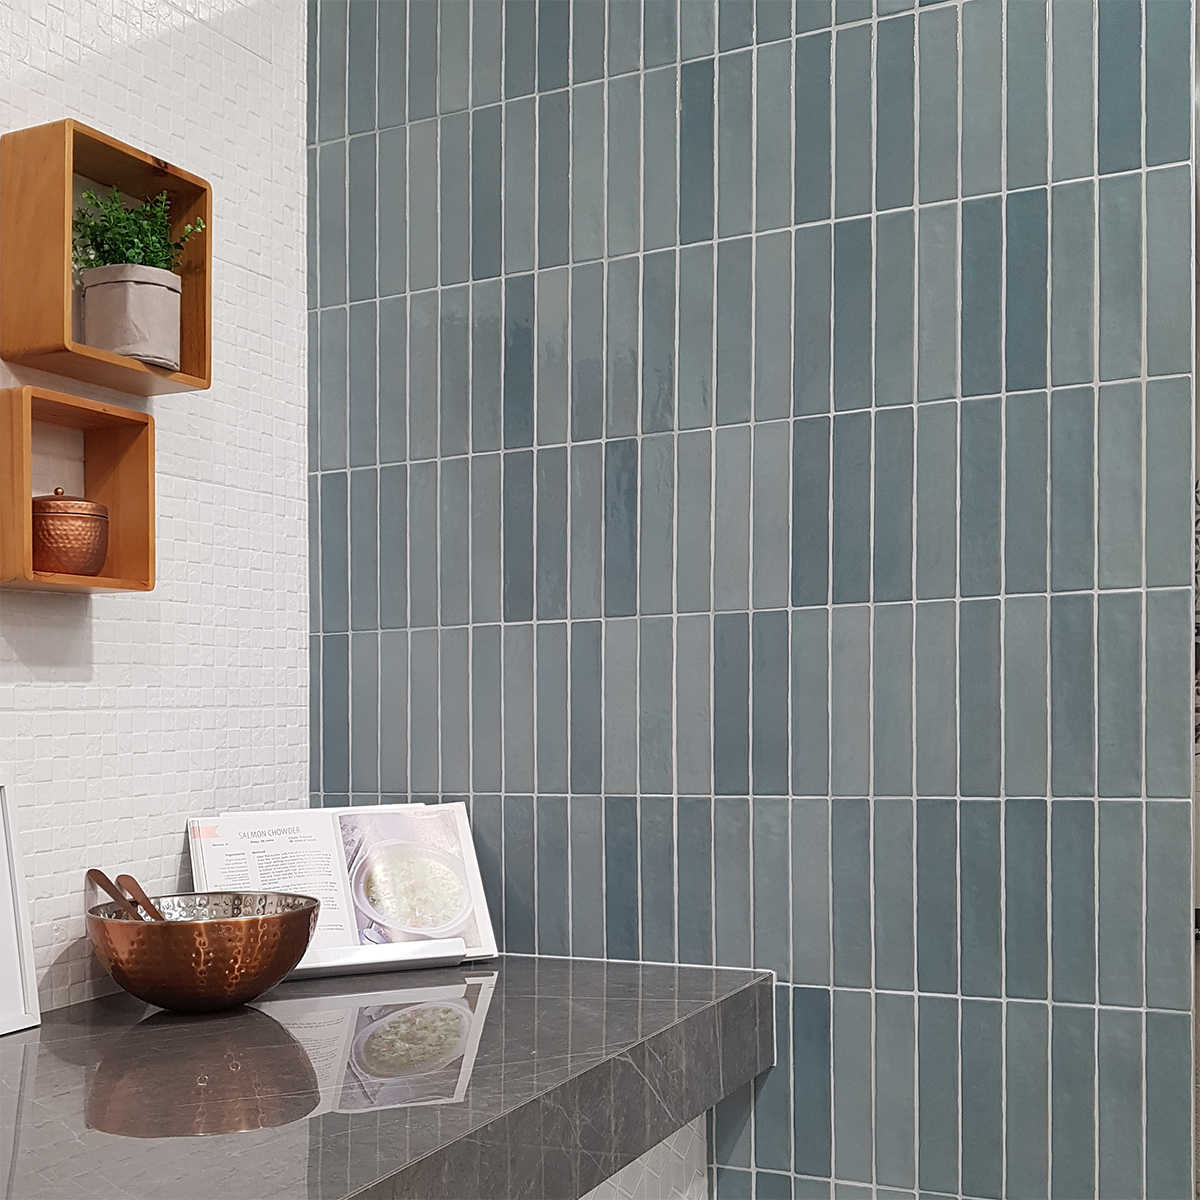 8 ways with subways tile space